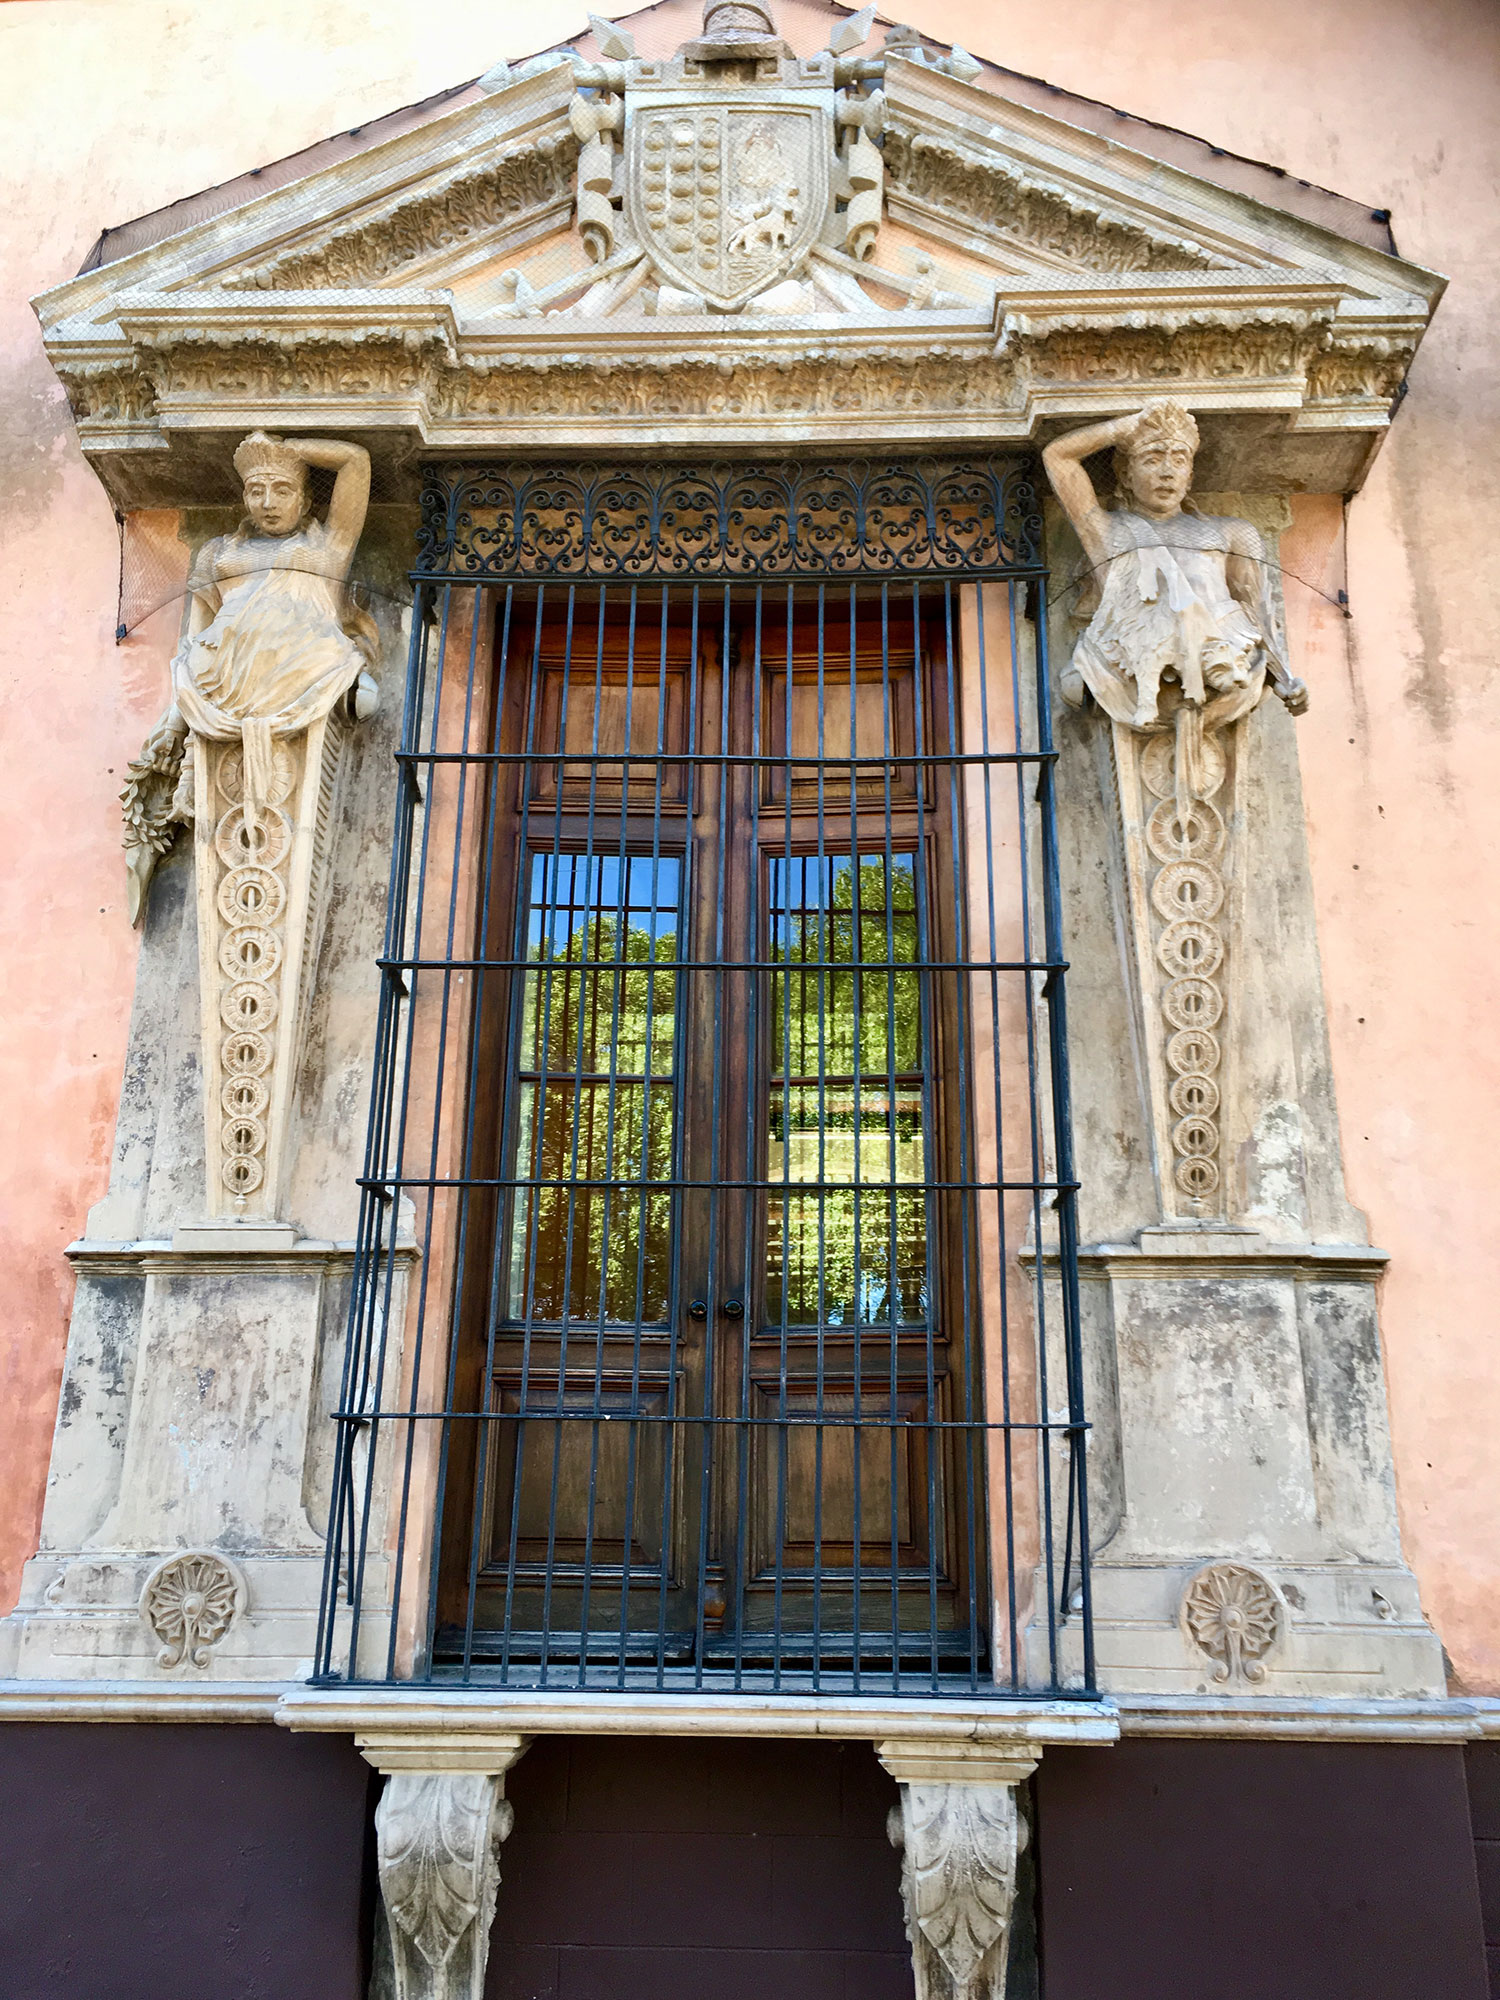 The figures that support the windows remind me of the Maya Bacabs (deities). They were holding up the sky. A coincidence?